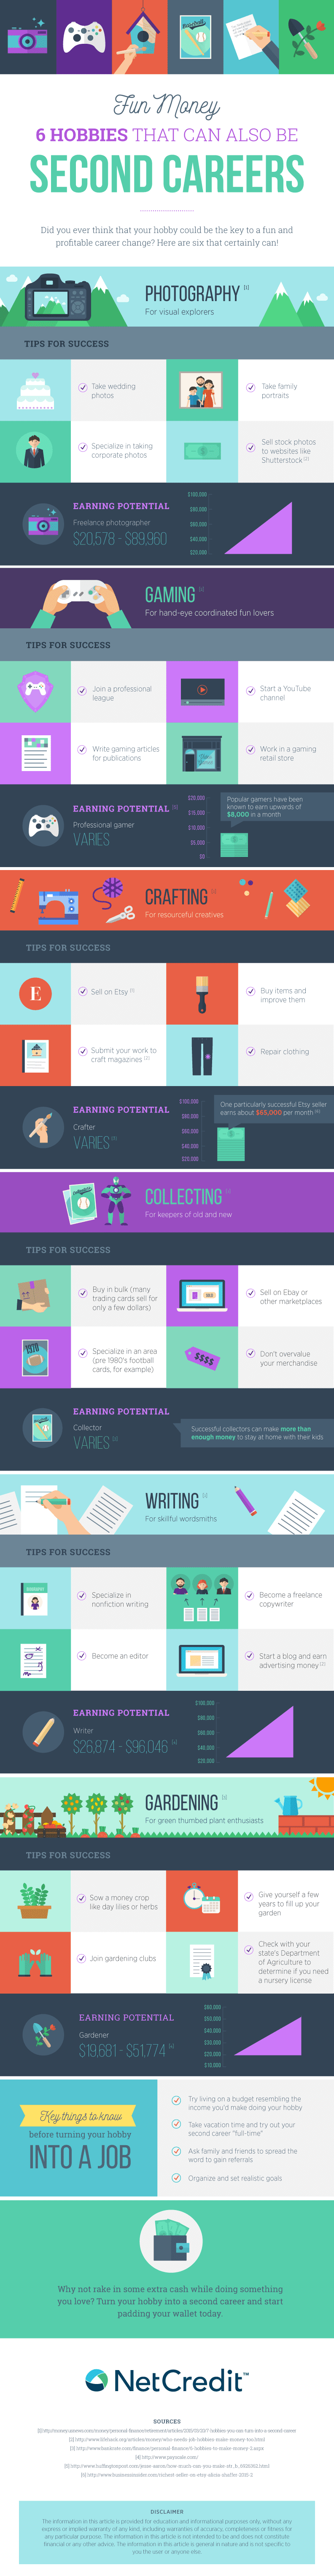 6 Hobbies That Can Also Be Second Careers - #infographic